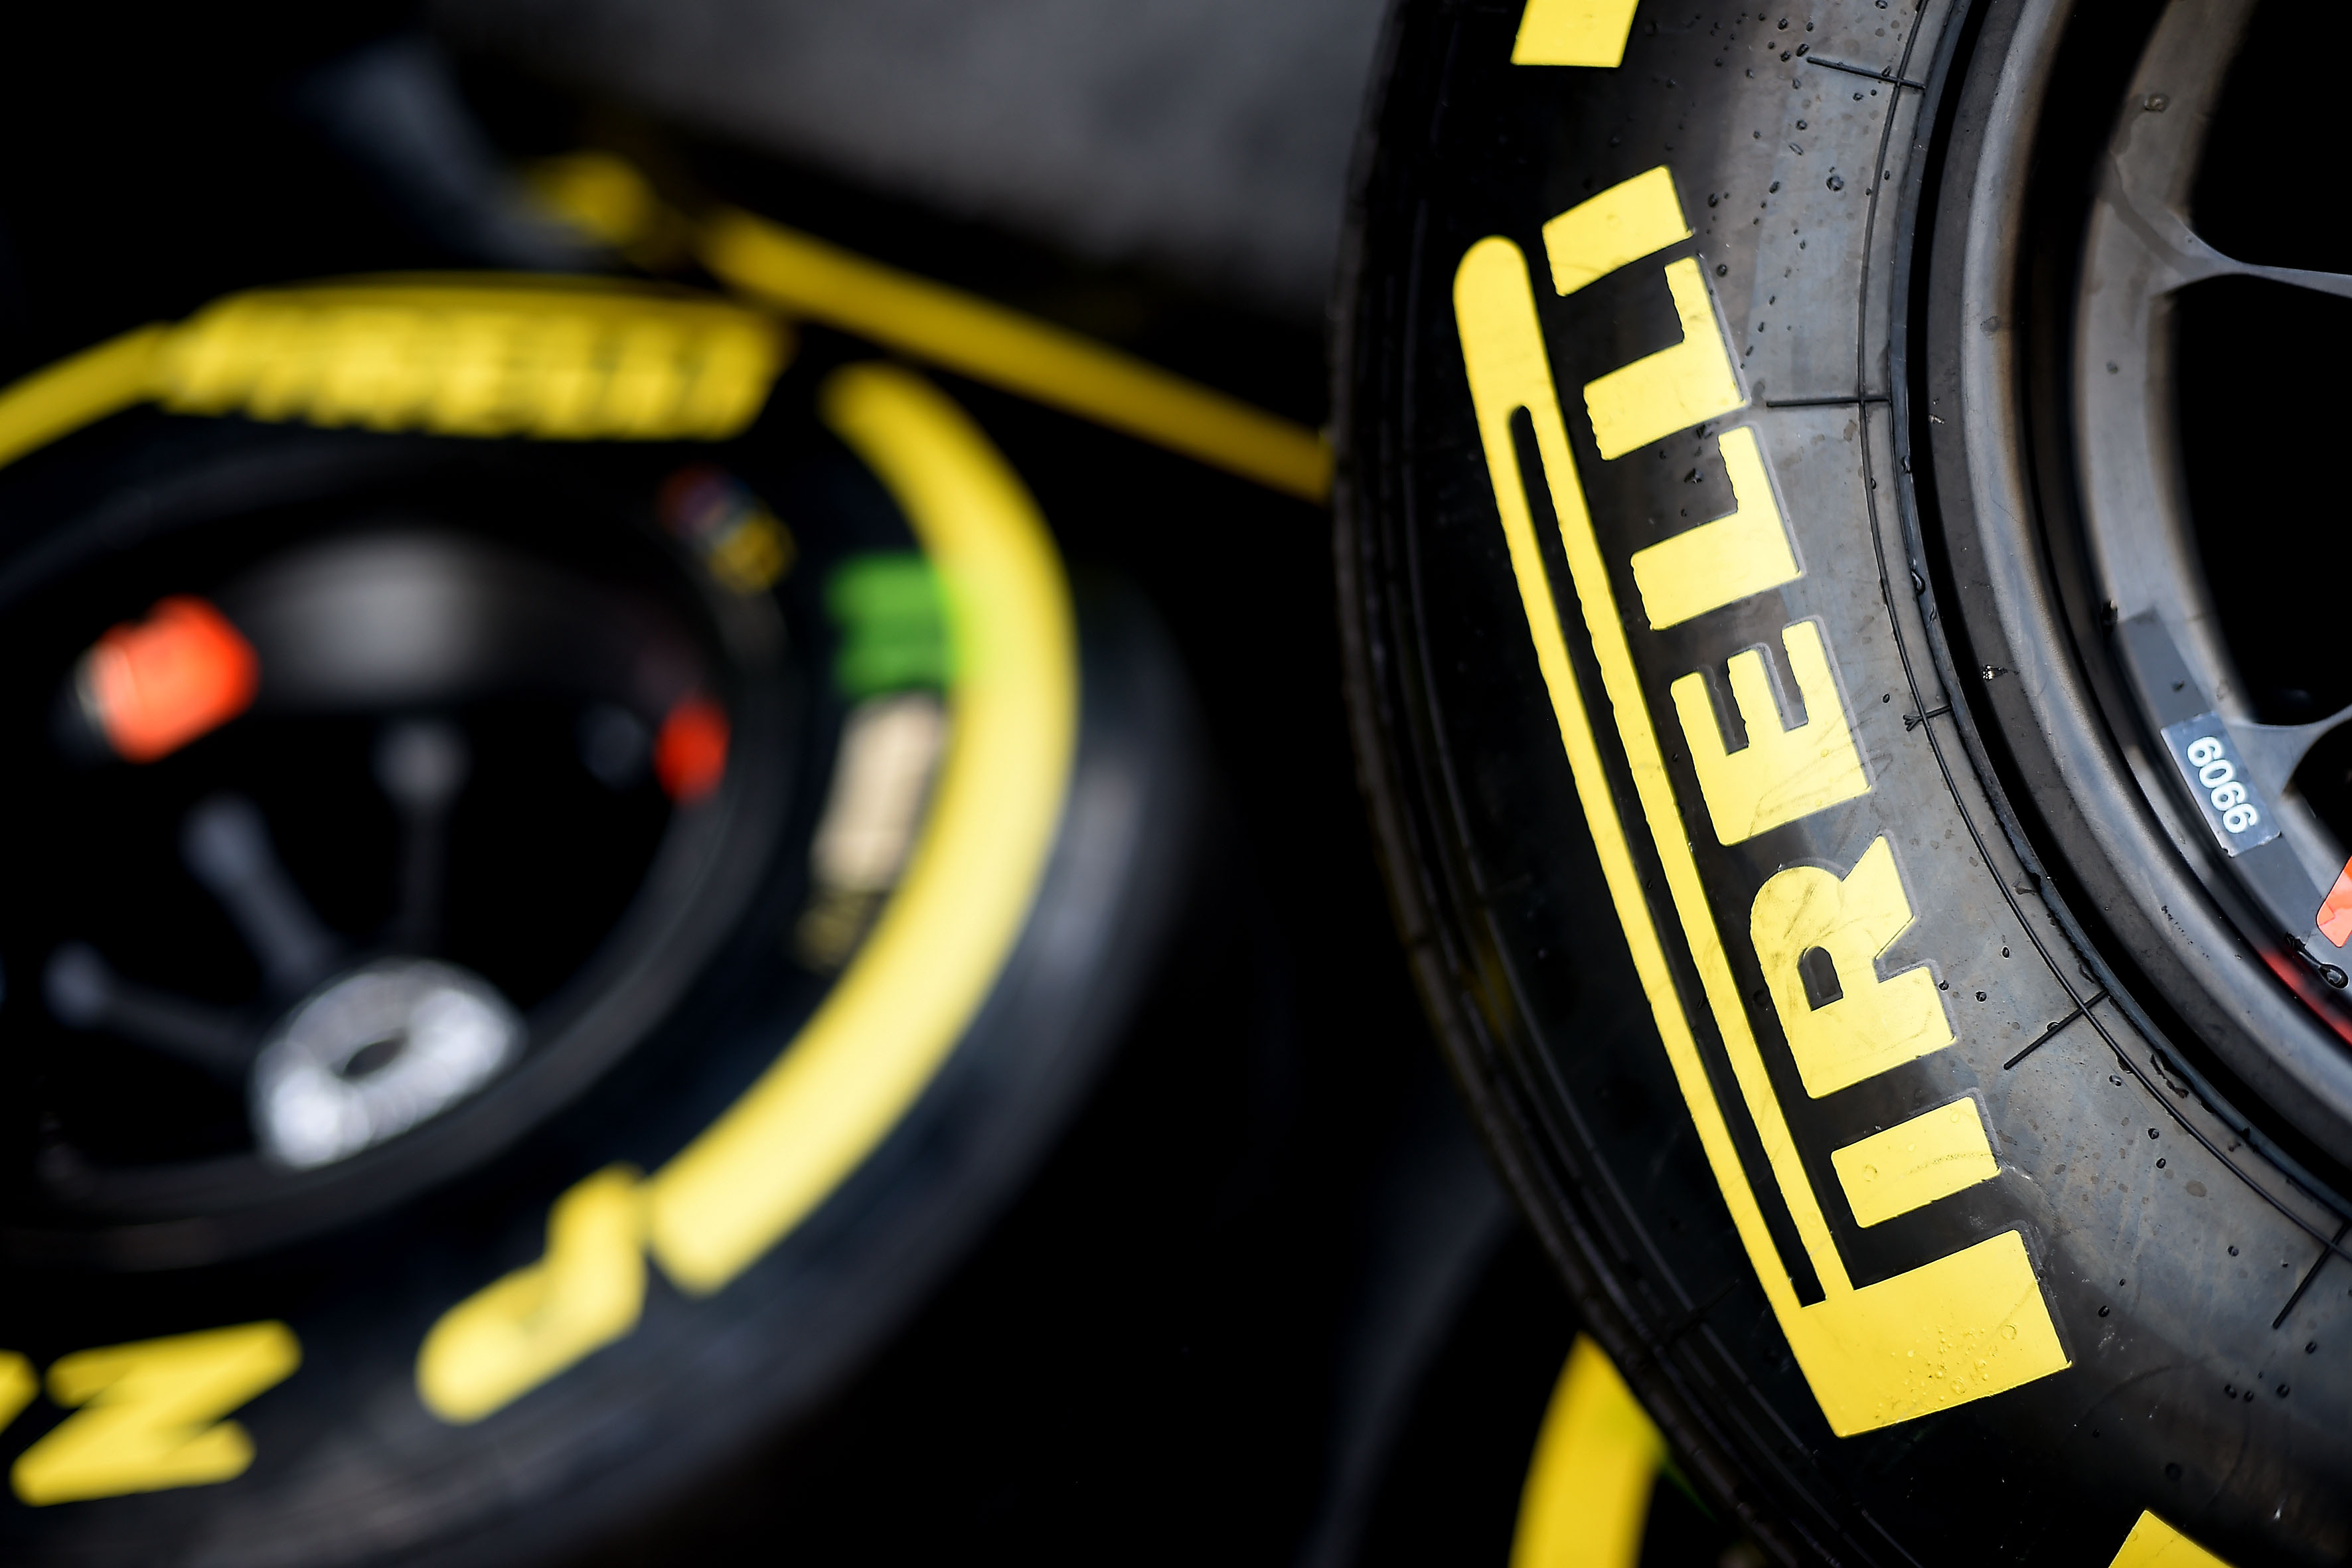 Pirelli have announced the tyre choices for round 4 of the 2016 ...